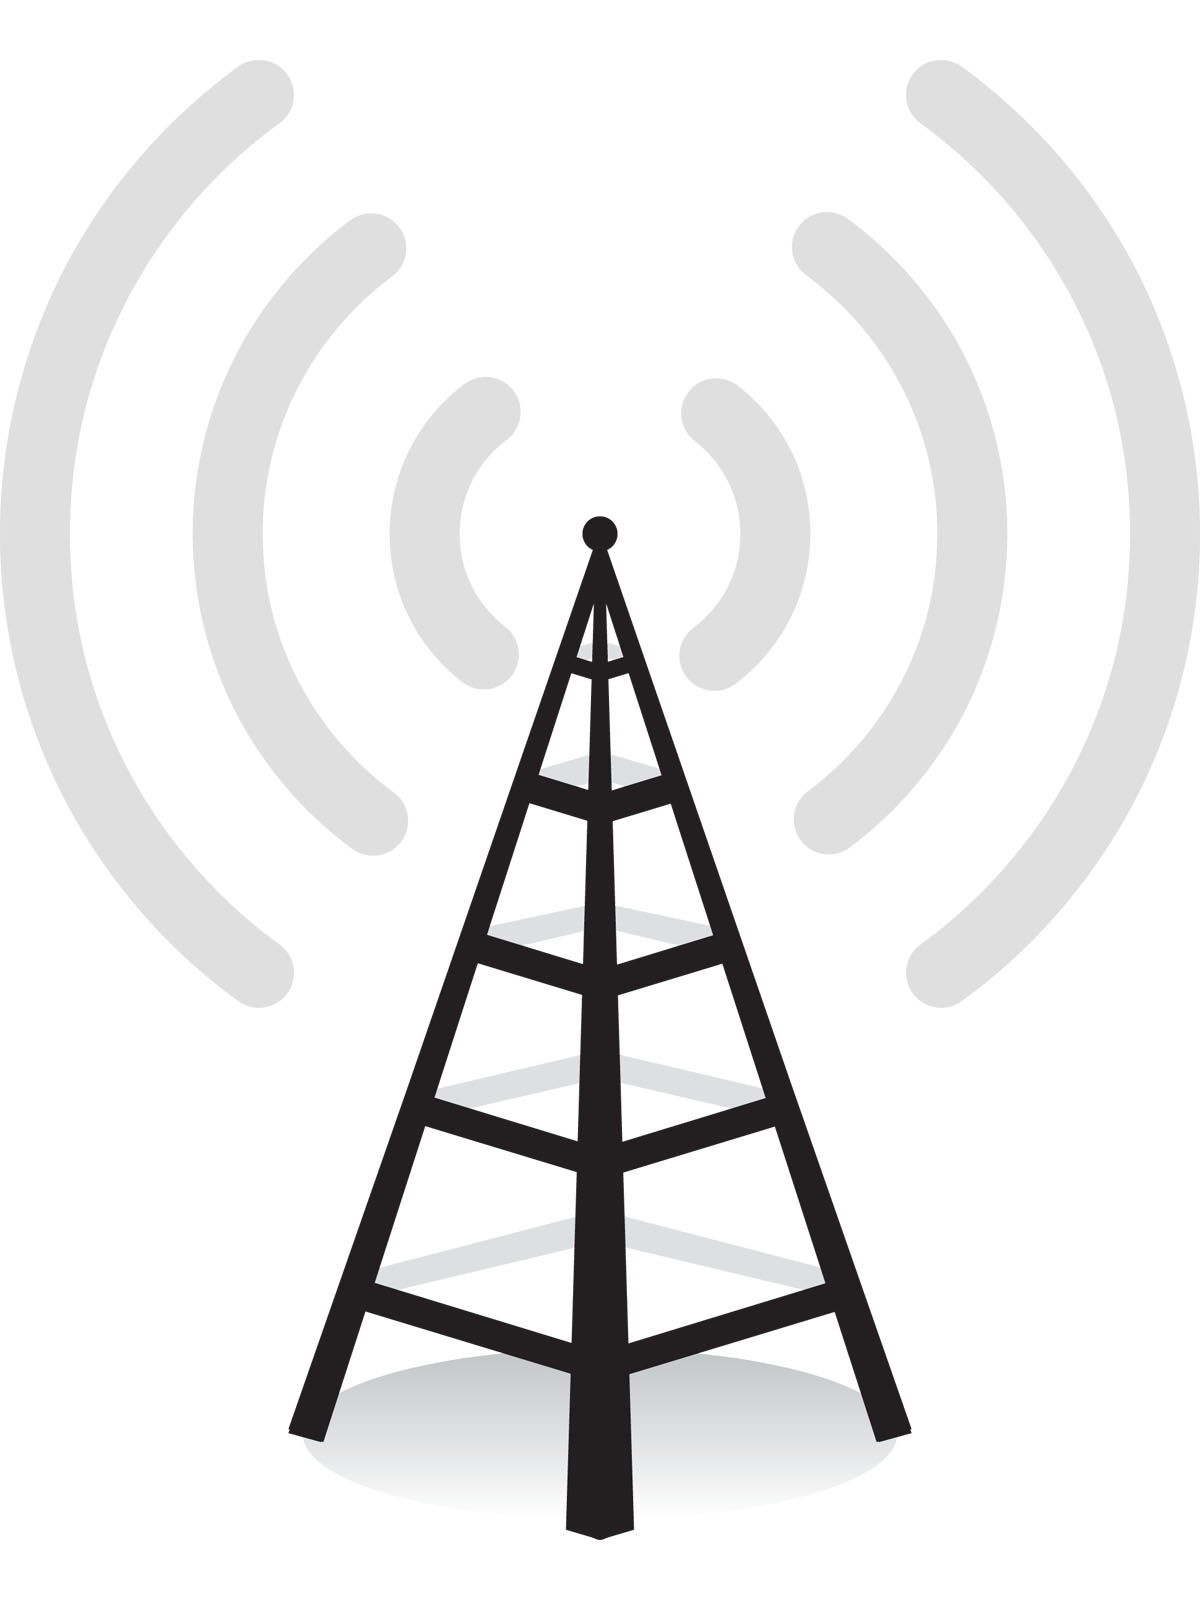 Wireless tower clip art.